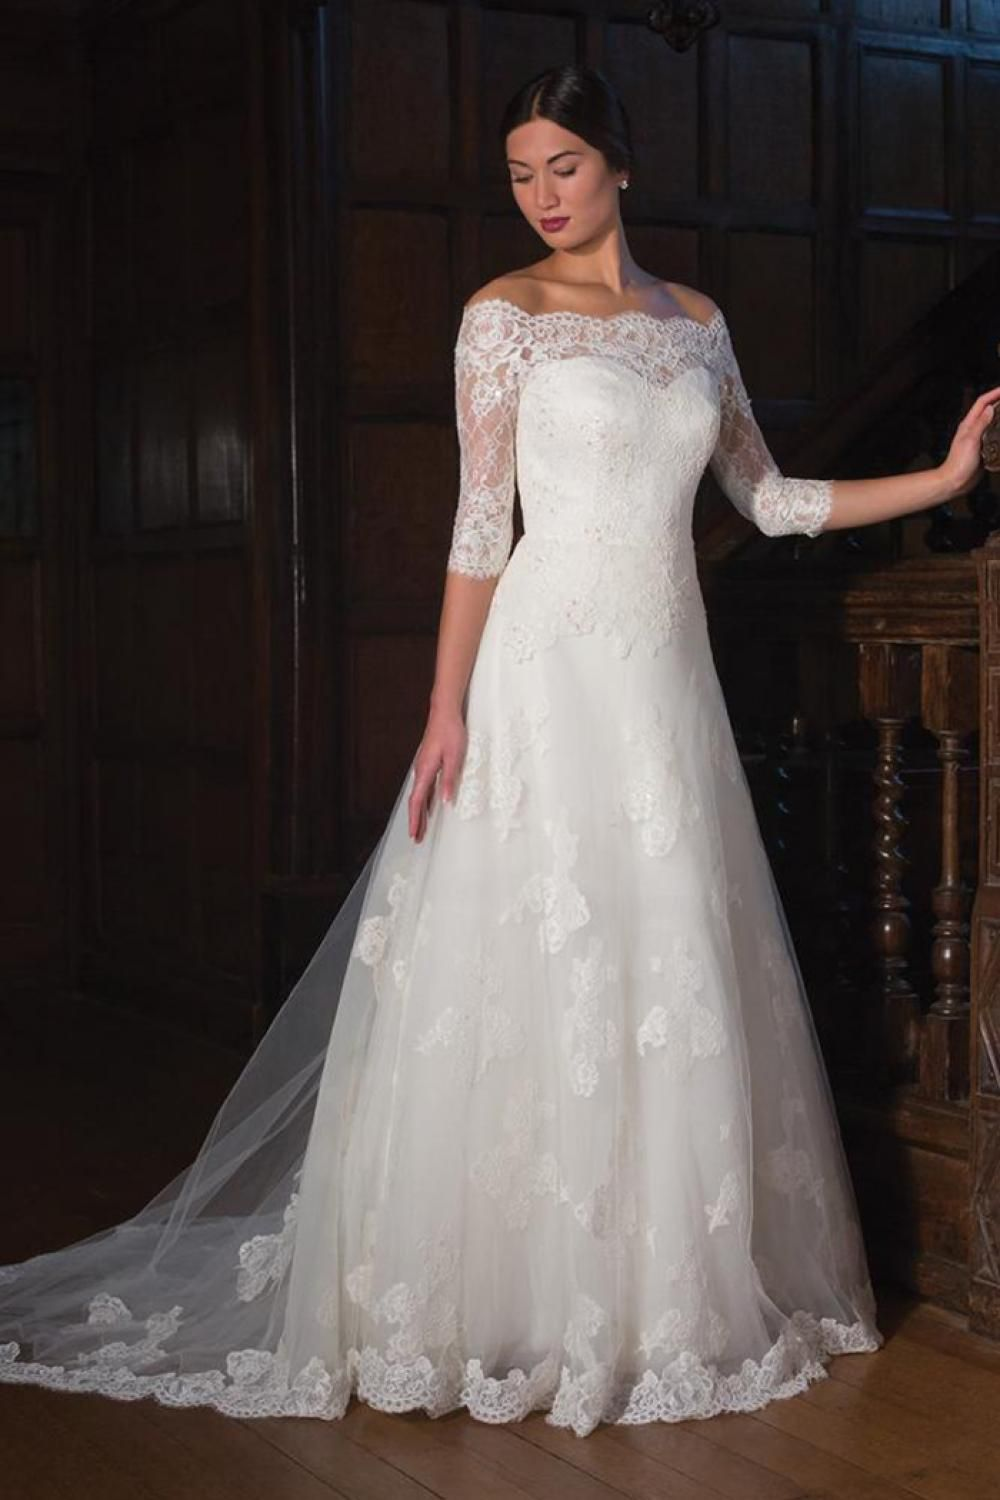 An off-shoulder full A-line lace gown with an illusion lace back ...